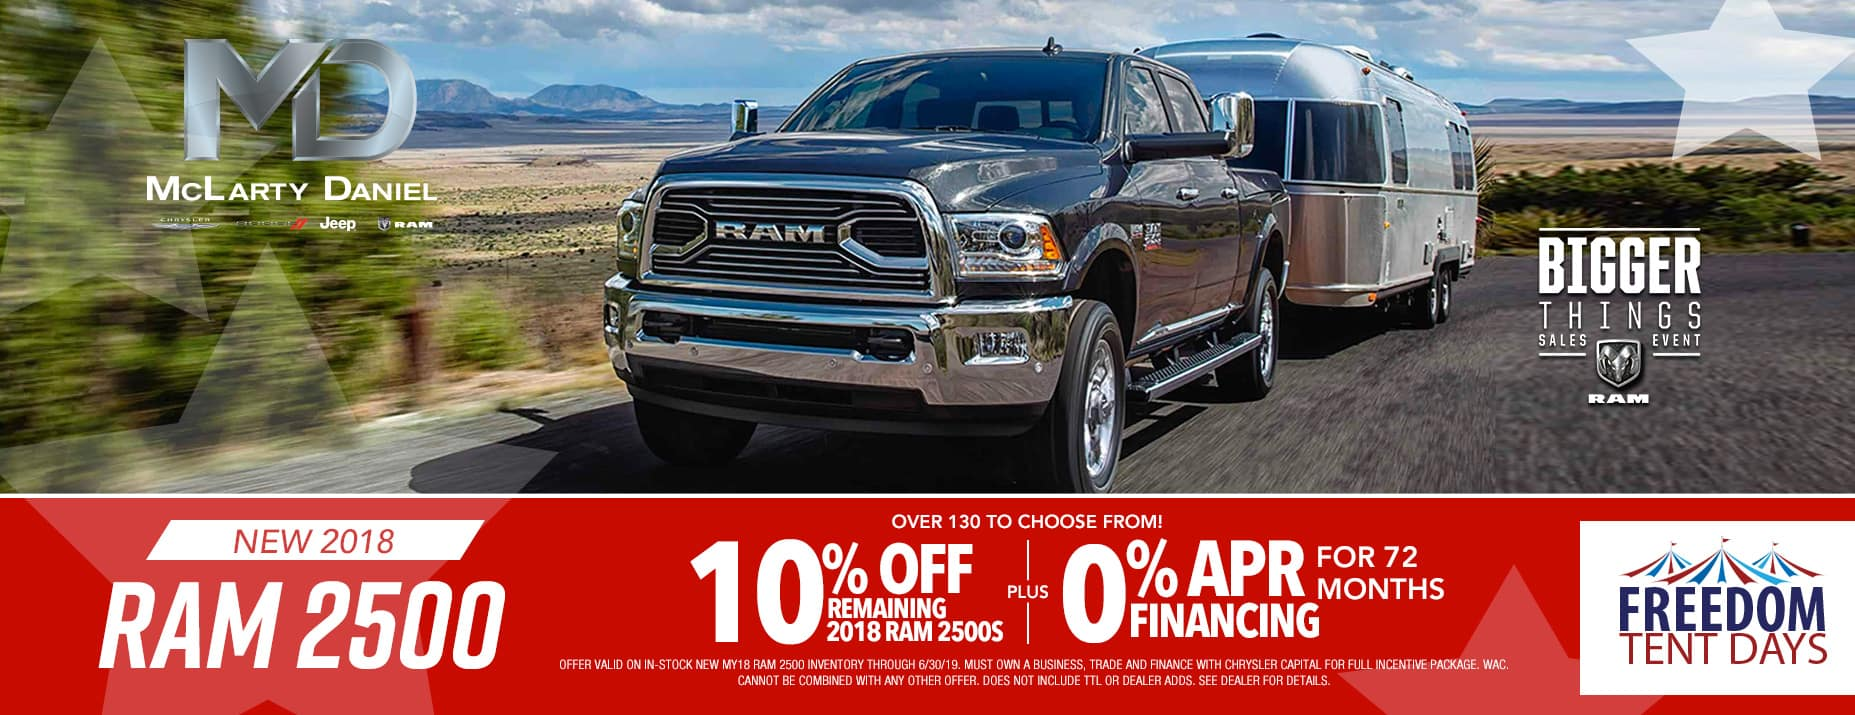 2018 250010% Off MSRP PLUS 0% APR For 72 Months